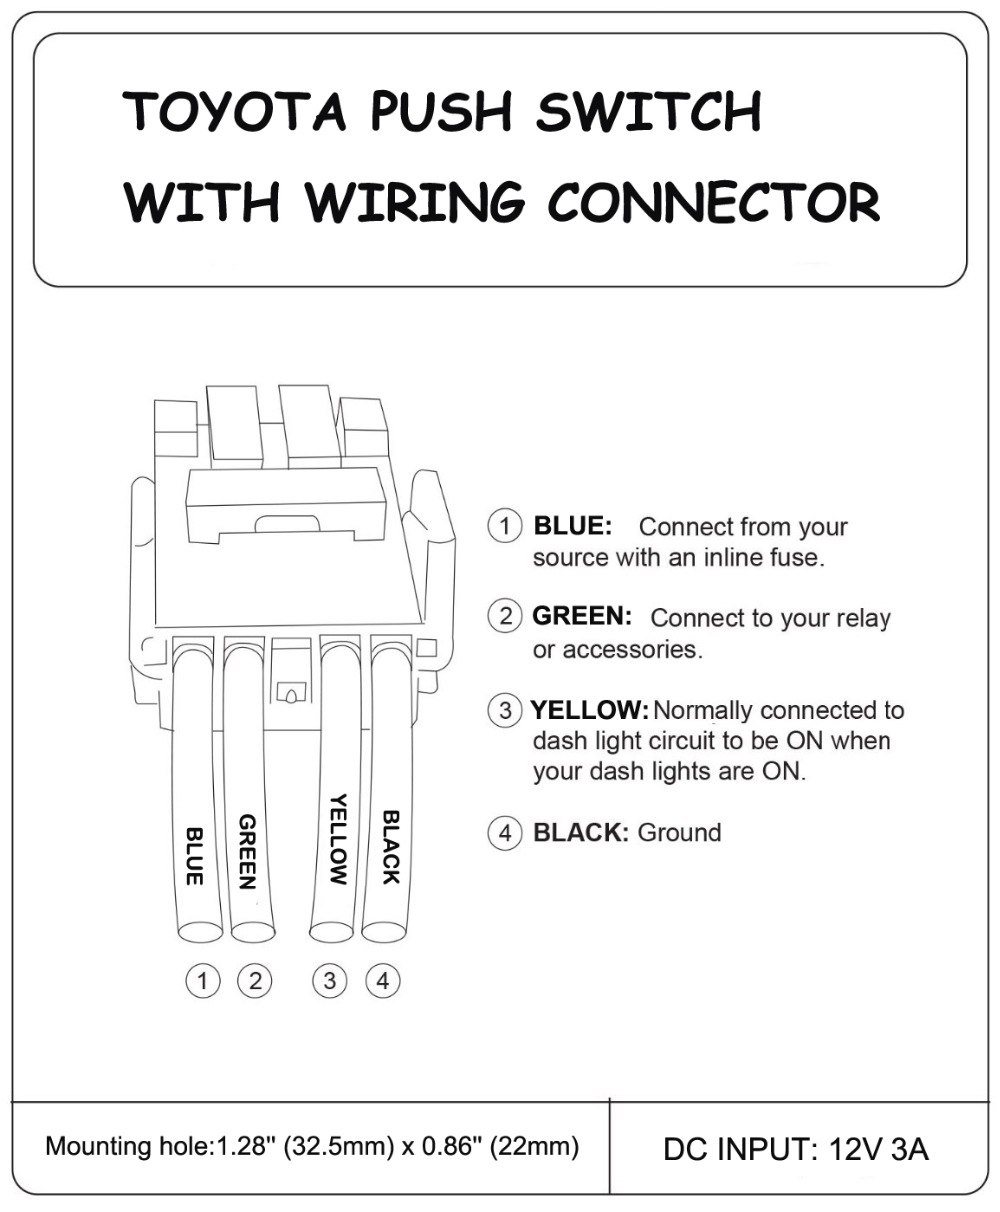 Carling 6 Pin Rocker Switch Wiring Diagram 2002 Jetta Ac Arb Reversing Camera : 35 Images - Diagrams | 138dhw.co